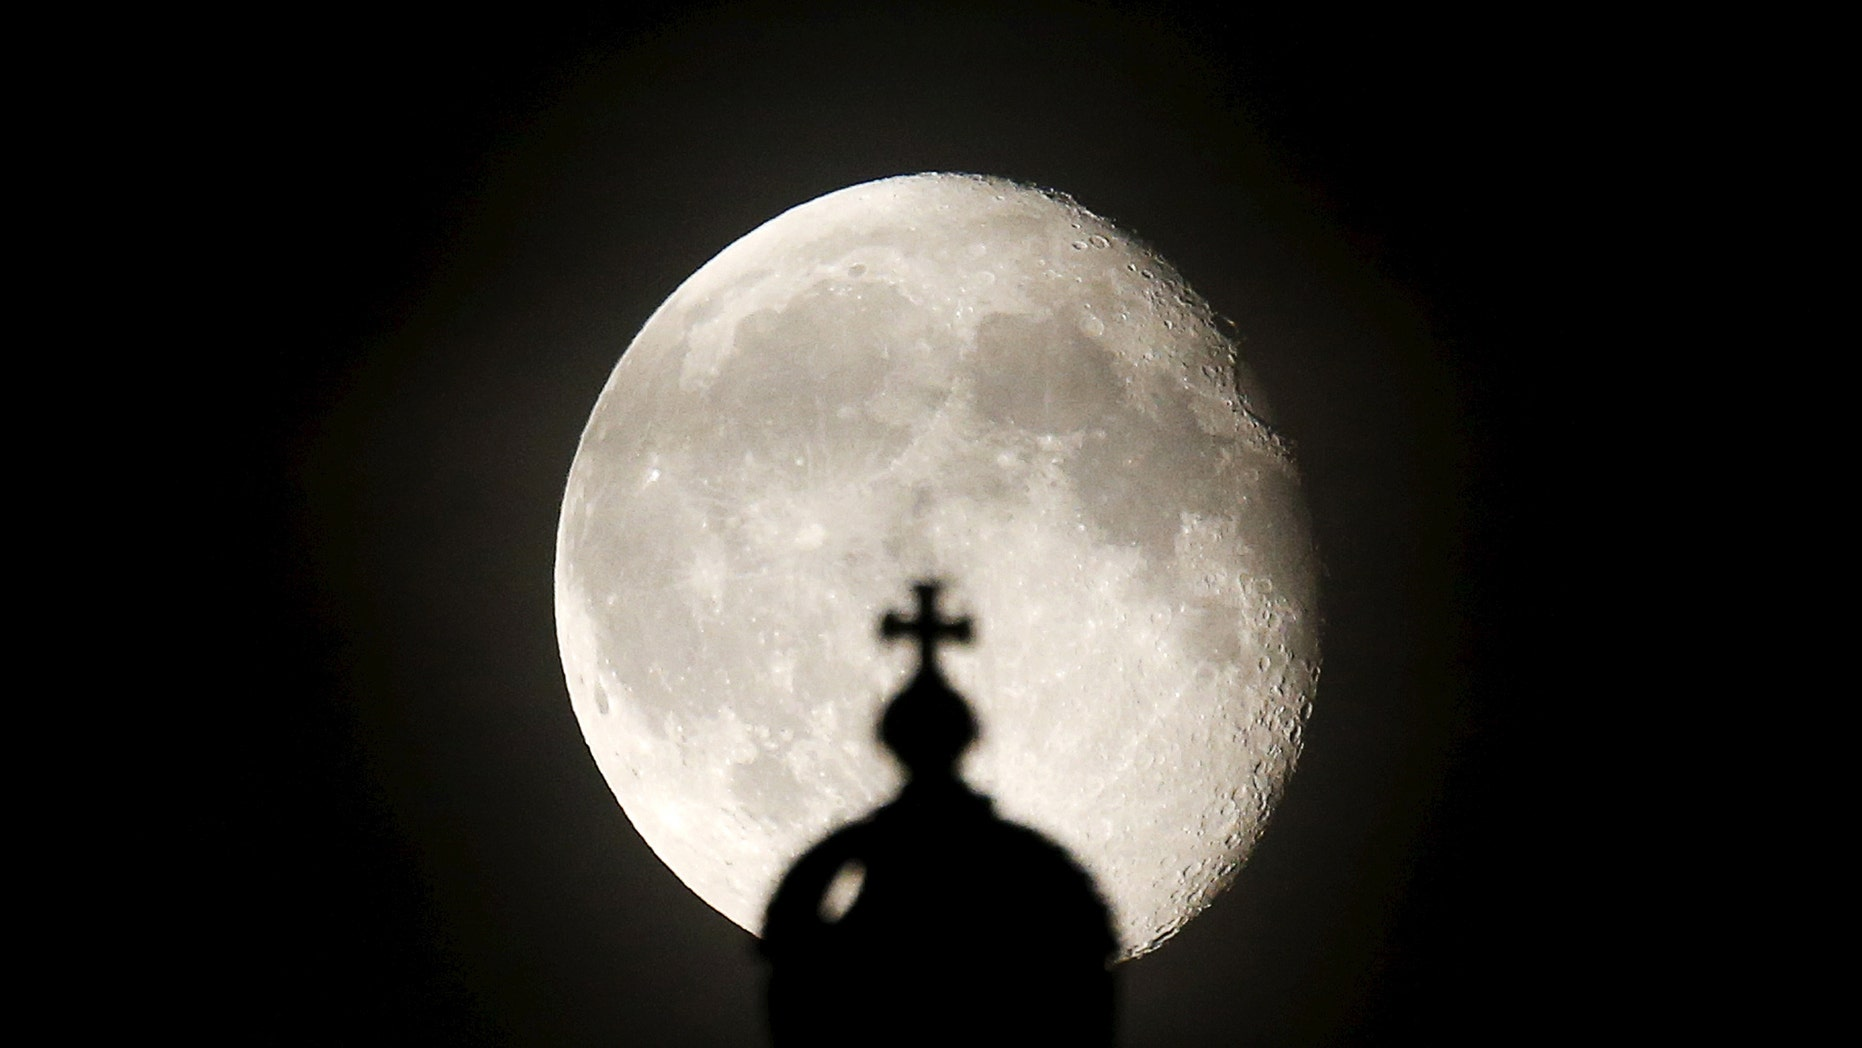 The moon rises next to a cross atop of the Reichstag building in Berlin, Germany, Aug. 2, 2015.